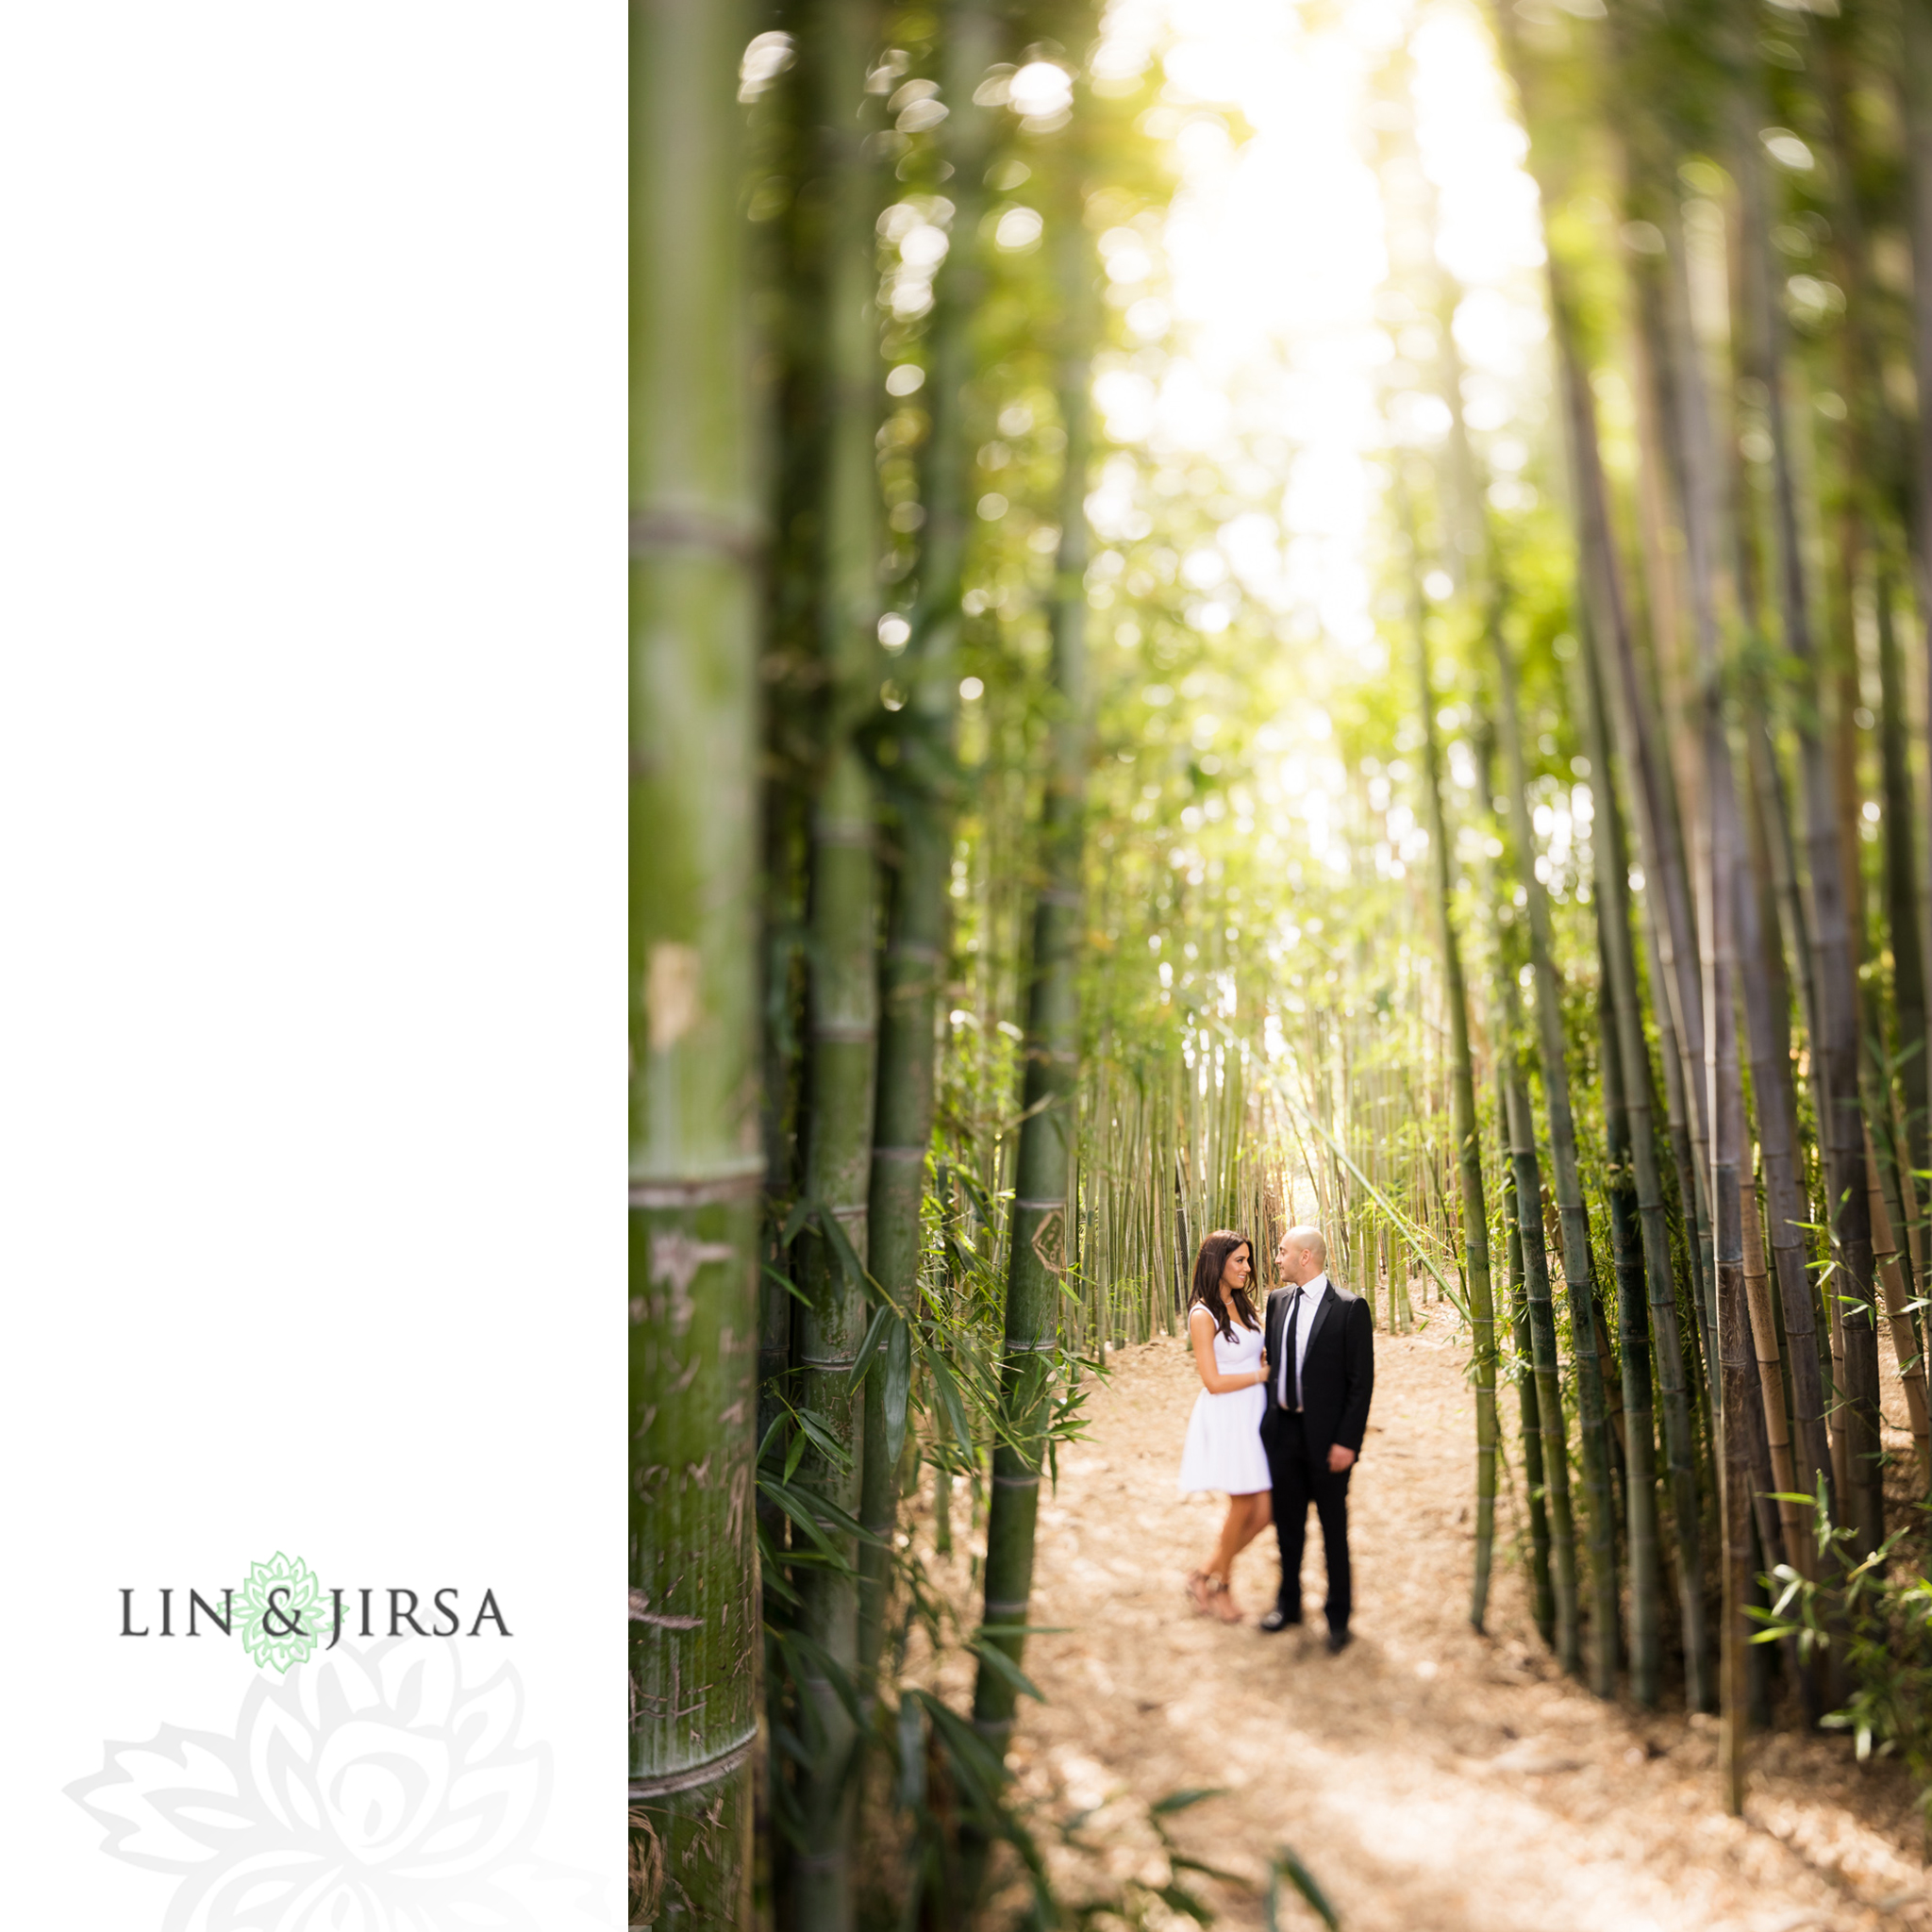 01-Los-angeles-arboretum-engagement-photography